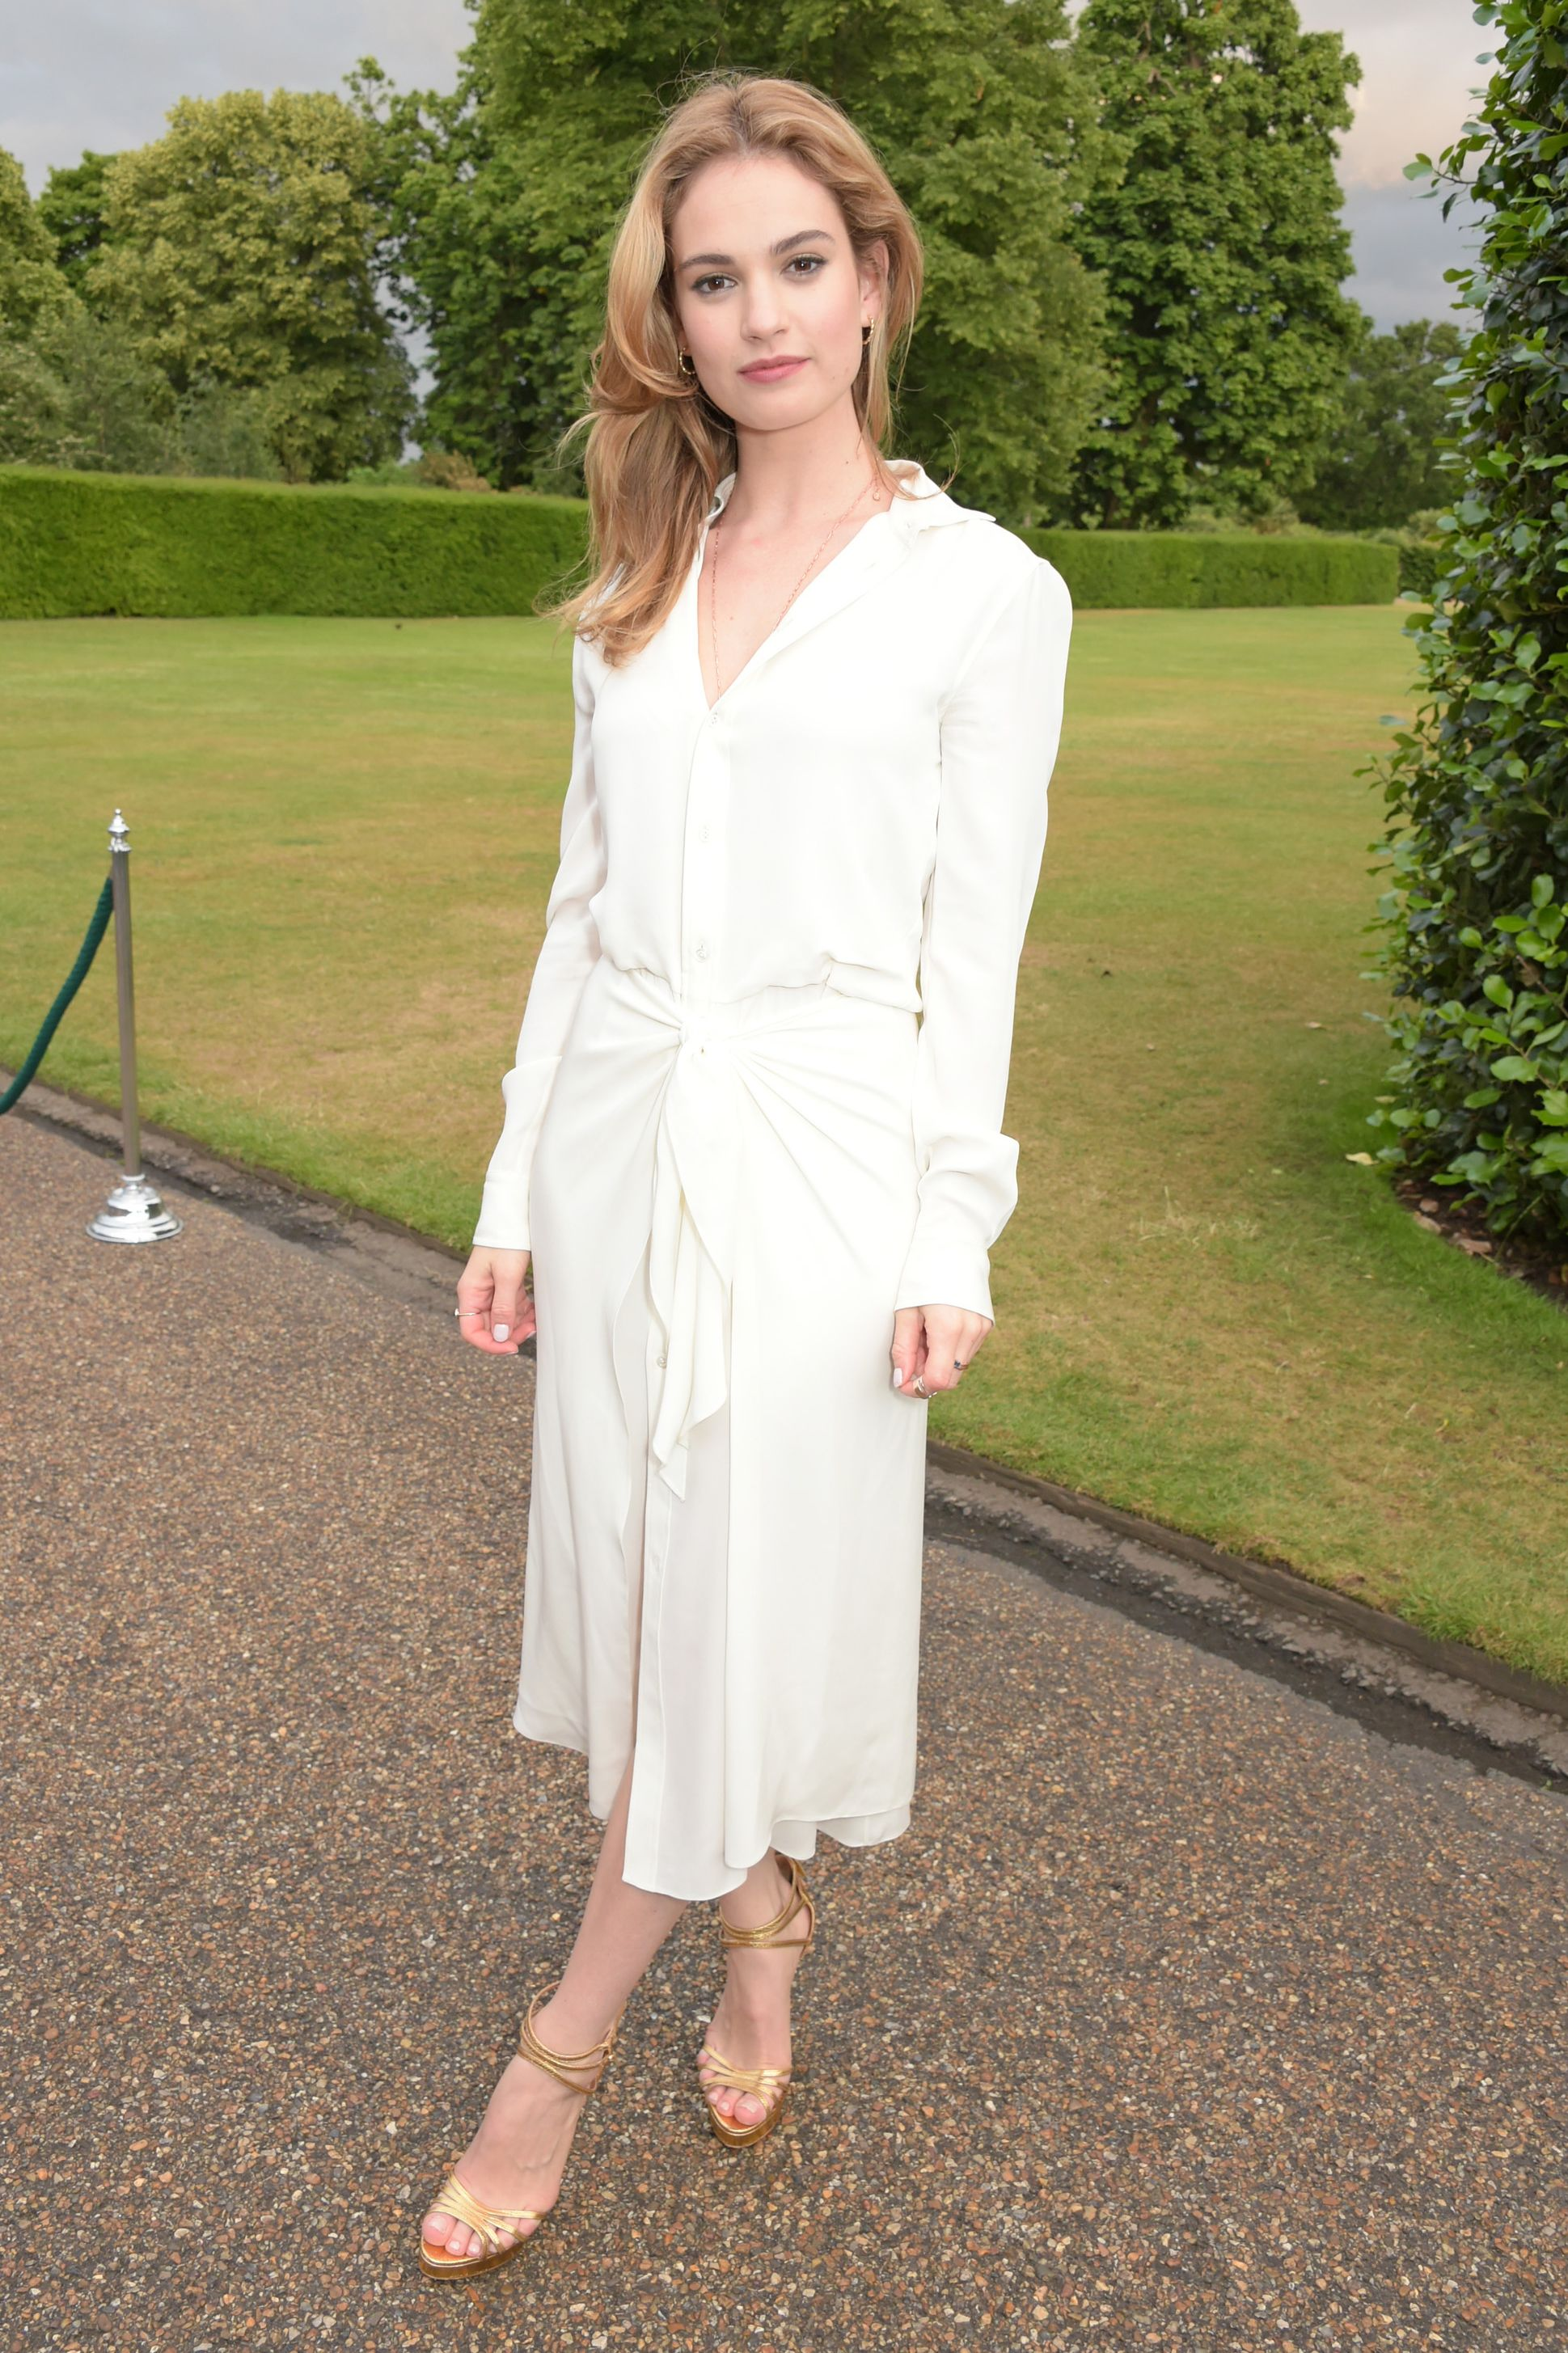 Lily James If you're heading to a fussier Memorial Day party, throw on a dressy shirt-dress and heels that you don't mind getting stuck in the grass.